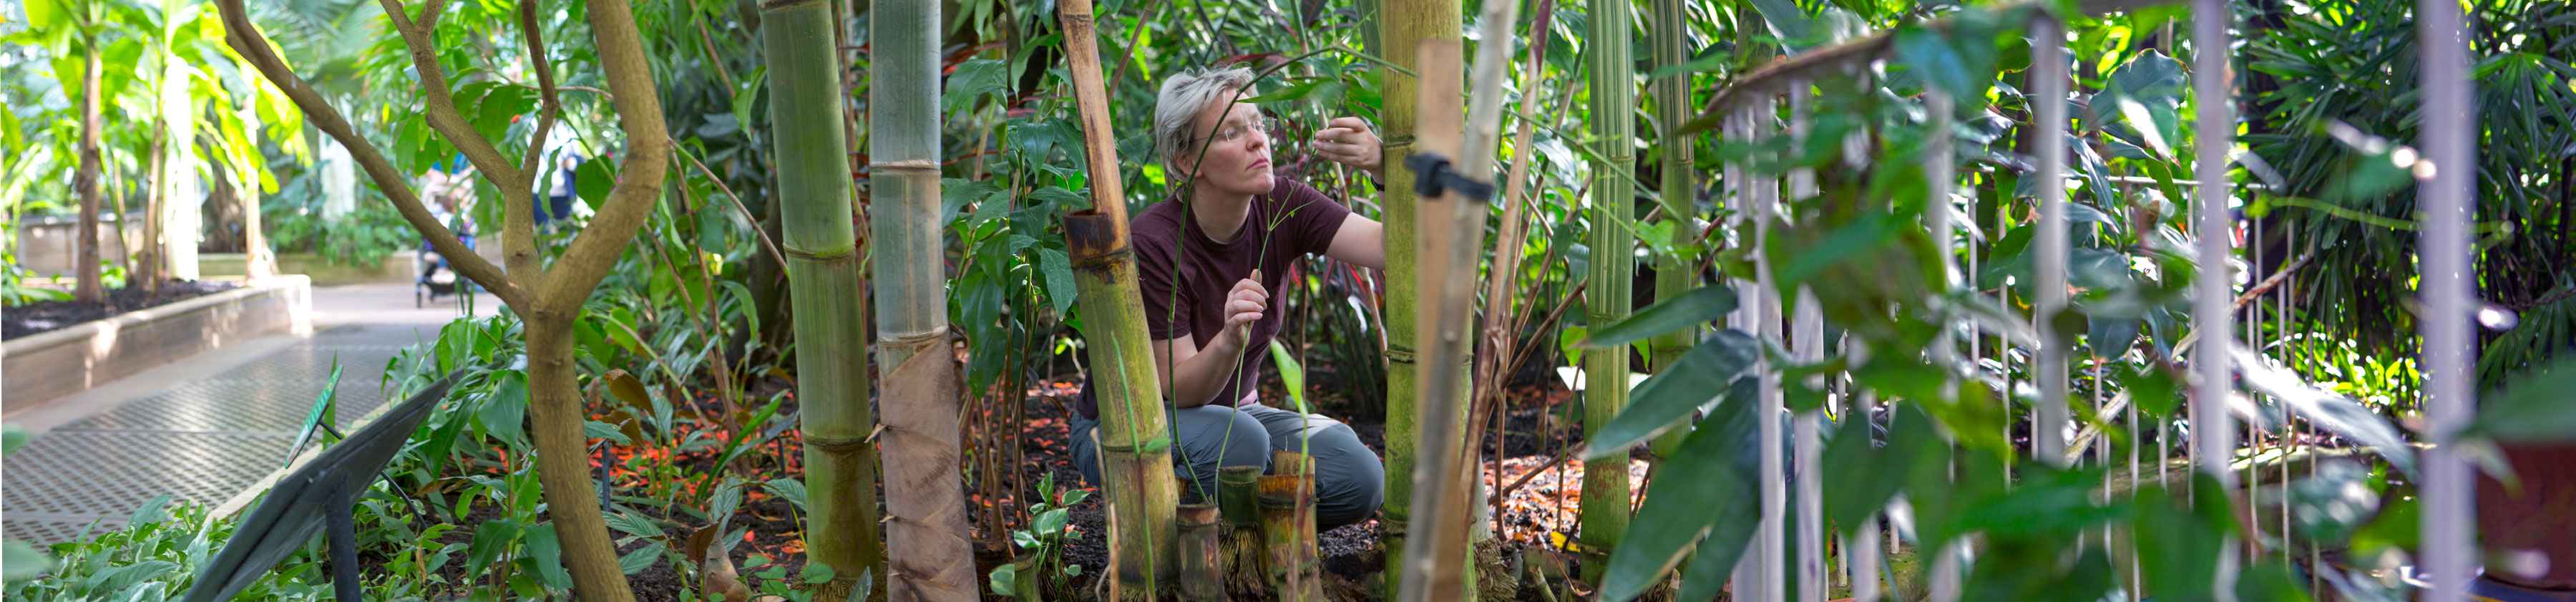 Researcher Maria Vorontsova in Palm House looking at Bamboo